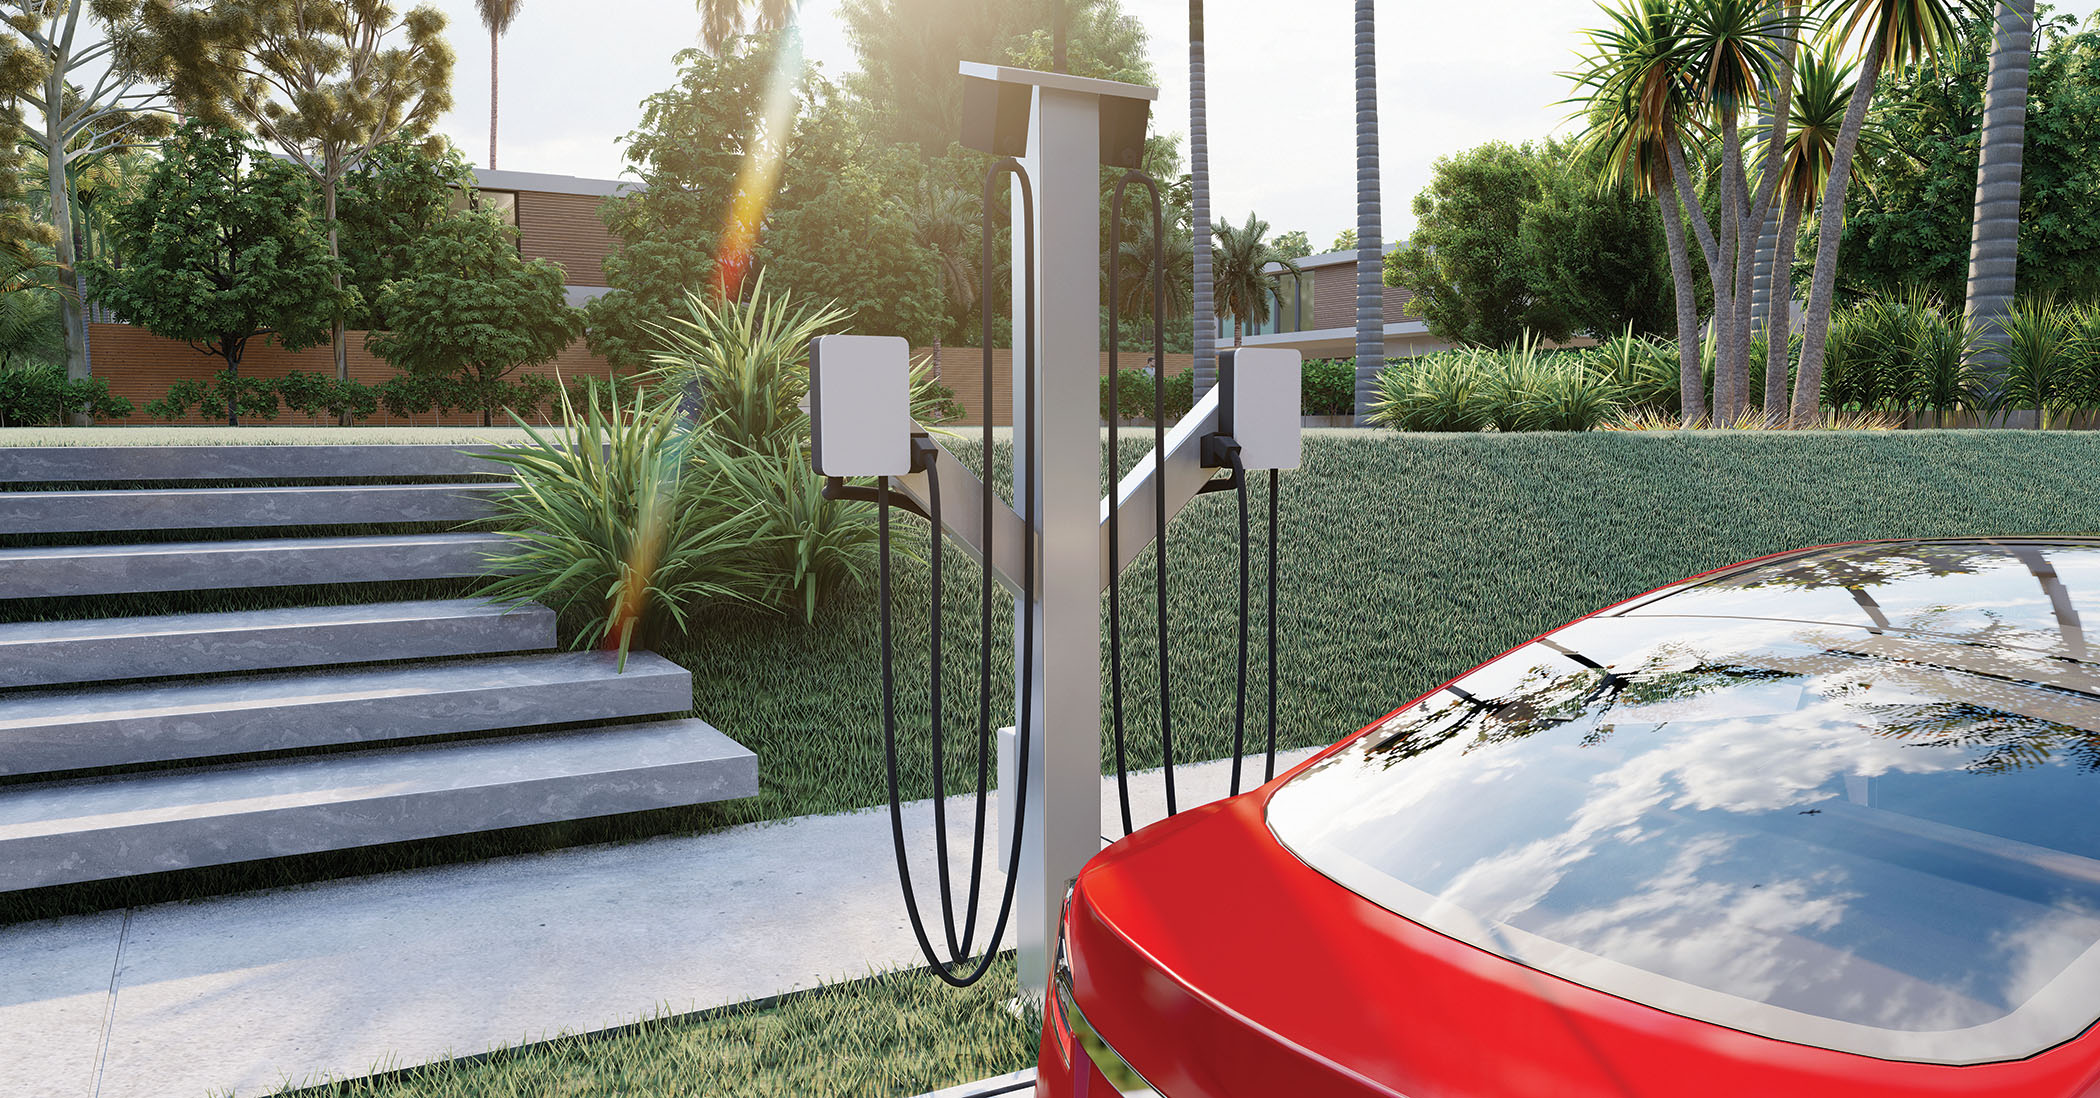 Image of a red electric vehicle parked by a power pedestal charging station